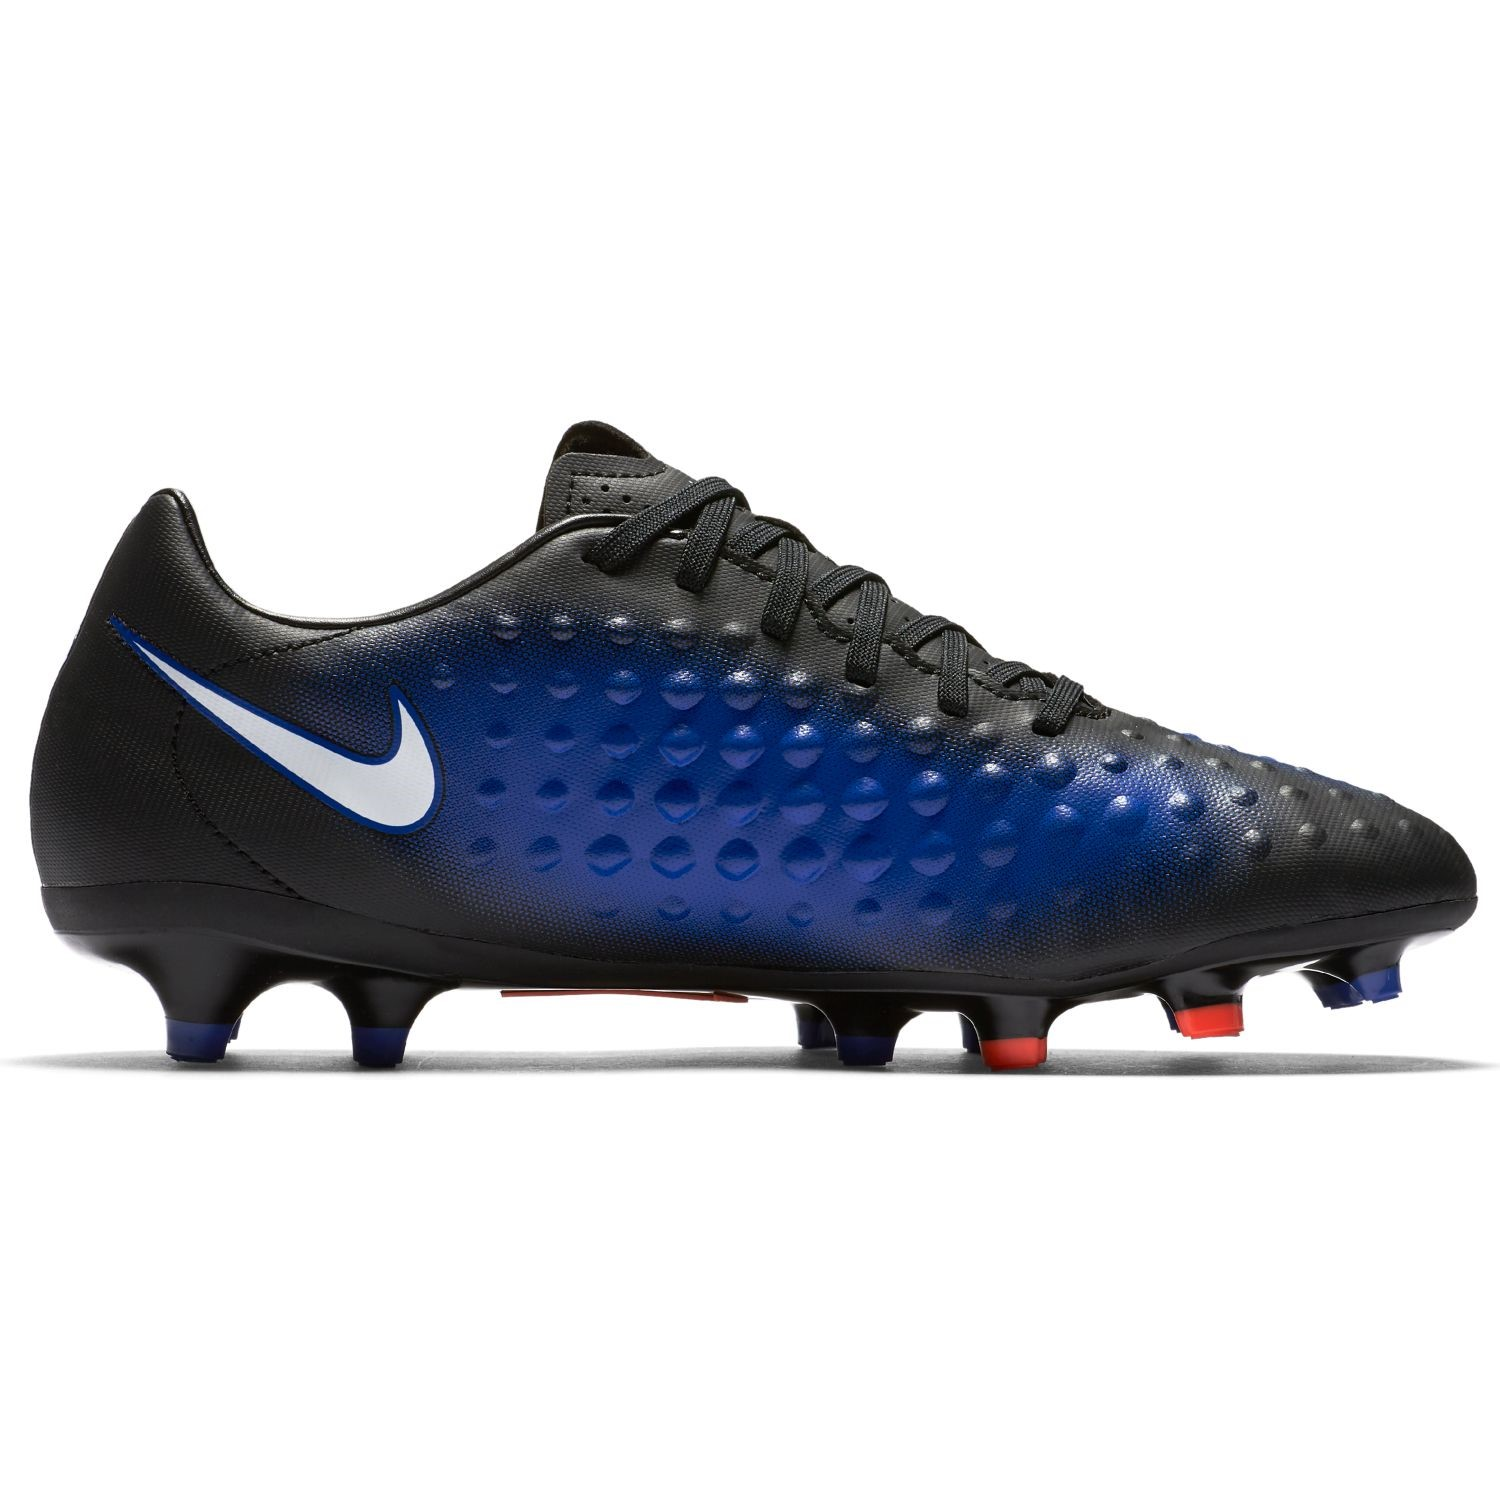 f1e21c21a Nike Magista Onda II FG - Mens Football Boots - Black/White/Paramount Blue